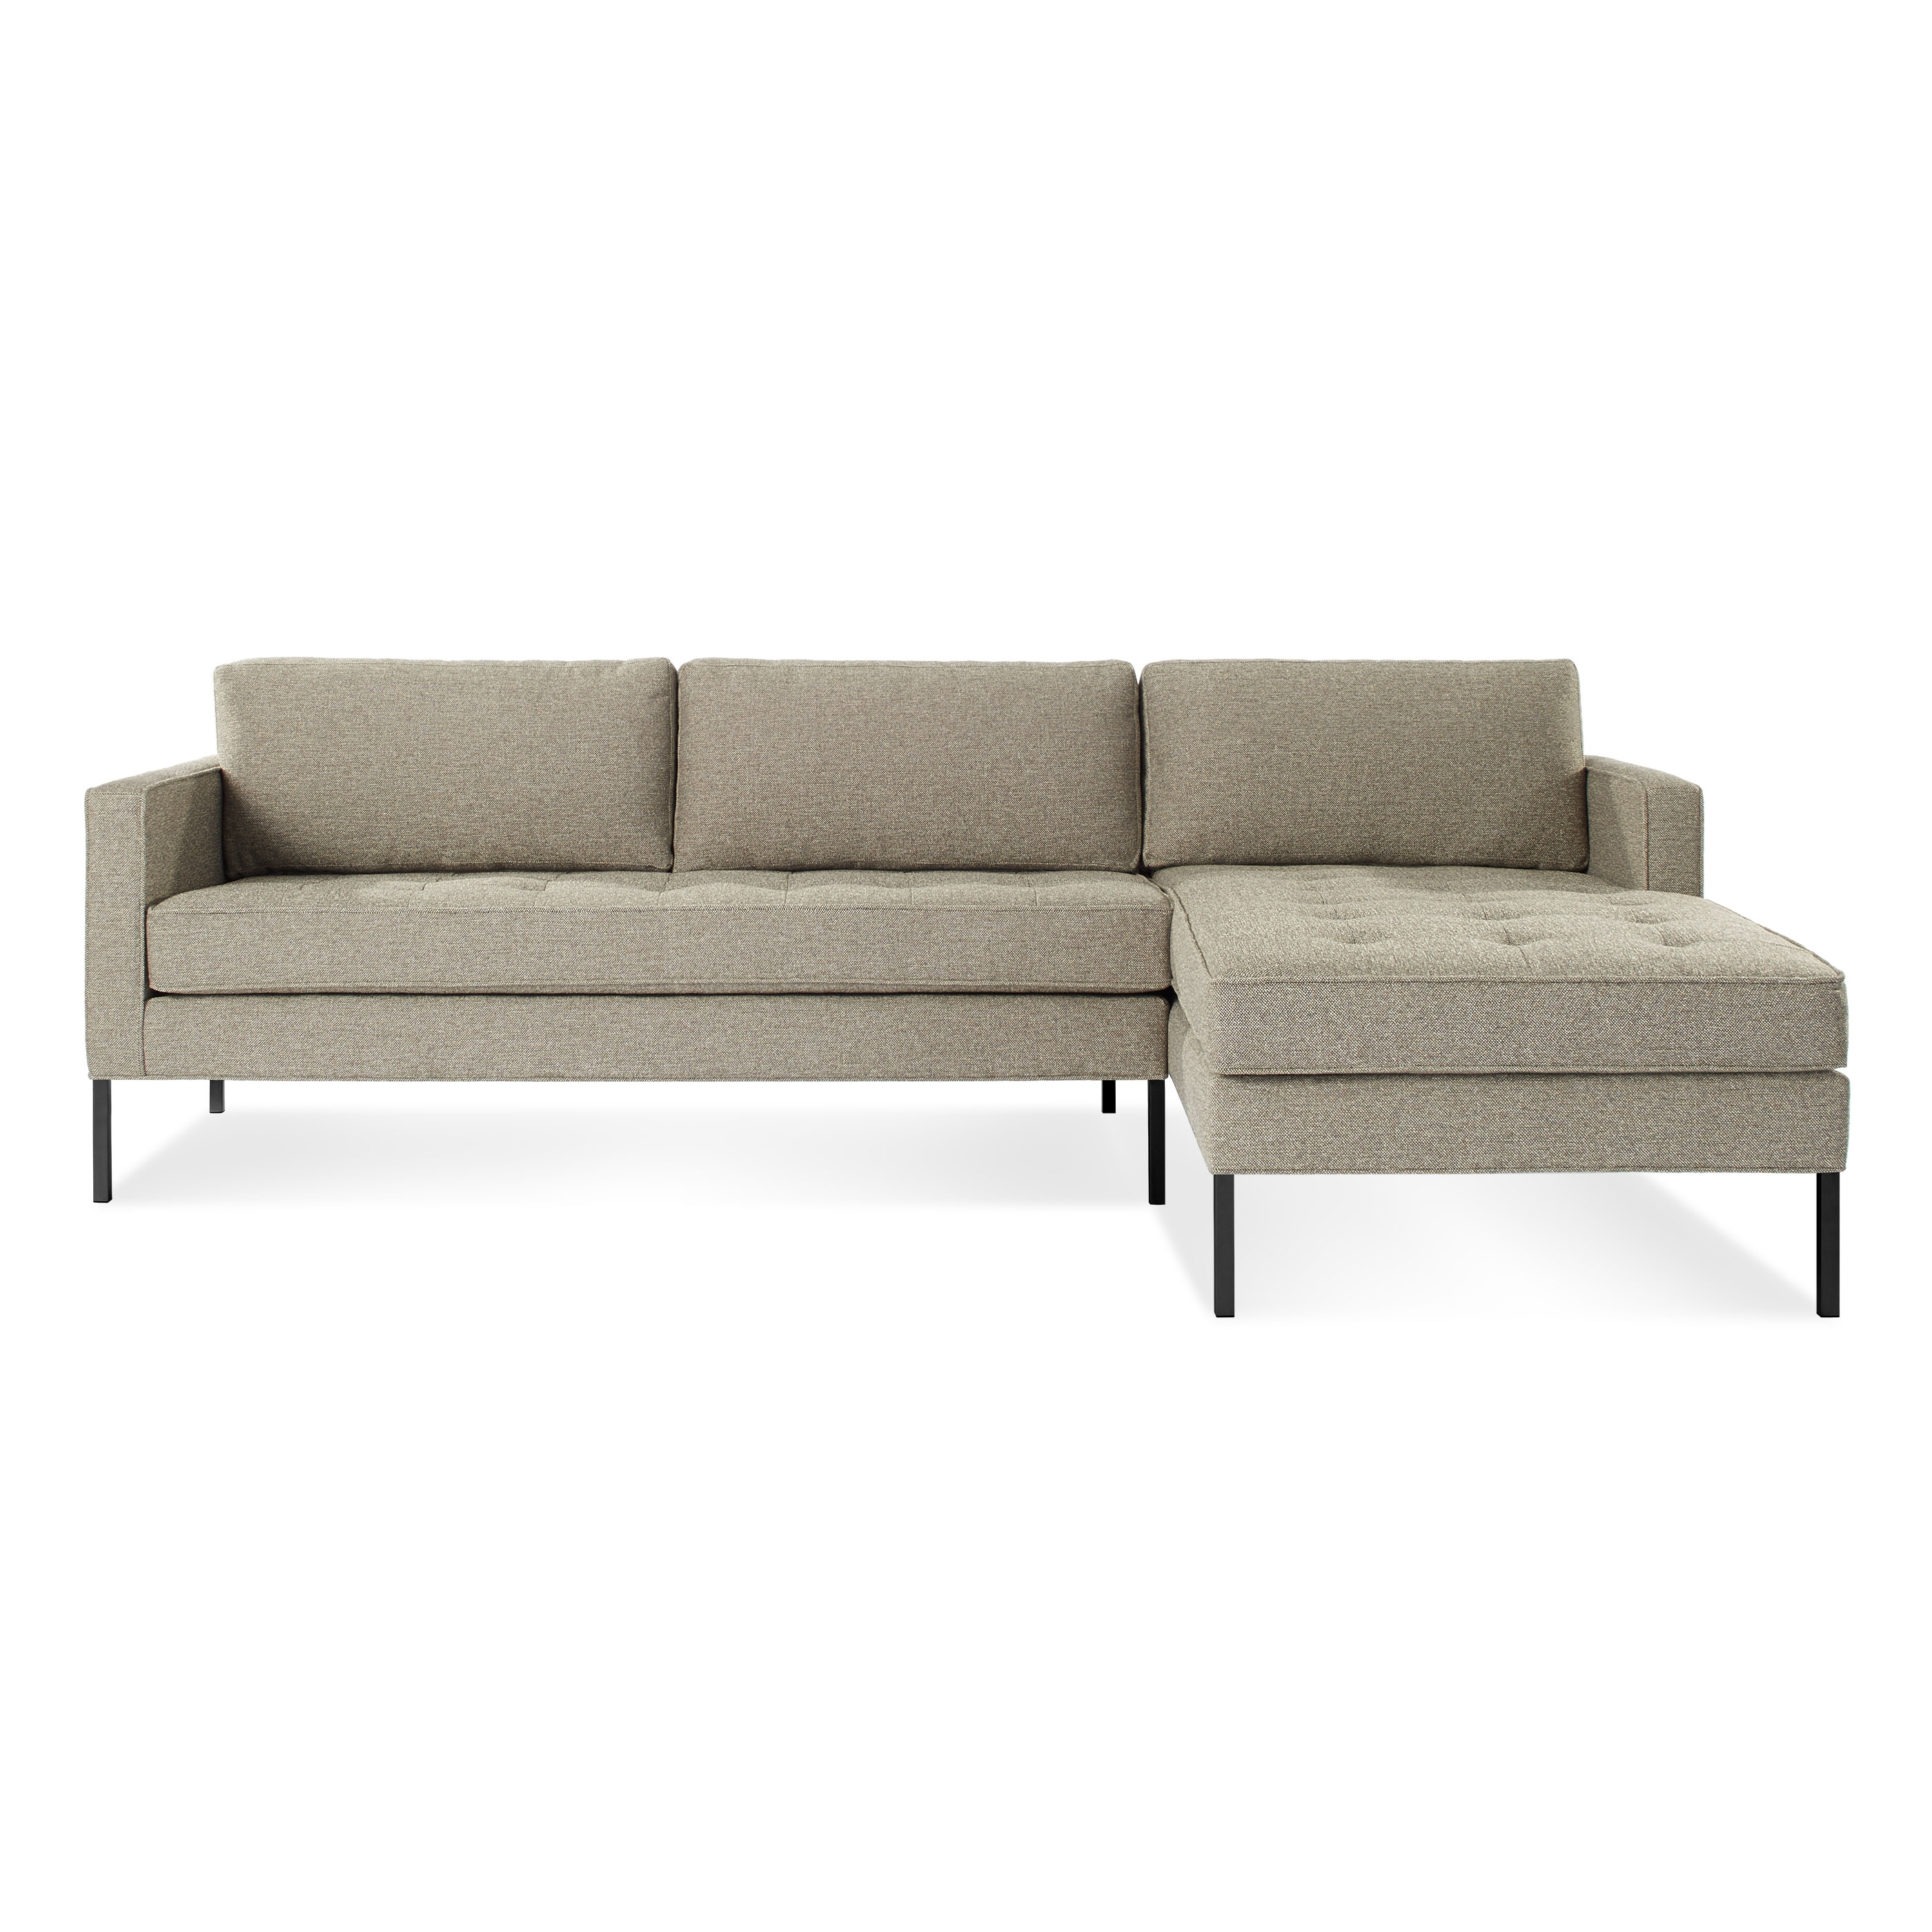 Chaise Sofas Intended For Most Current Paramount Modern Chaise Sofa With Left Chaise (View 7 of 15)